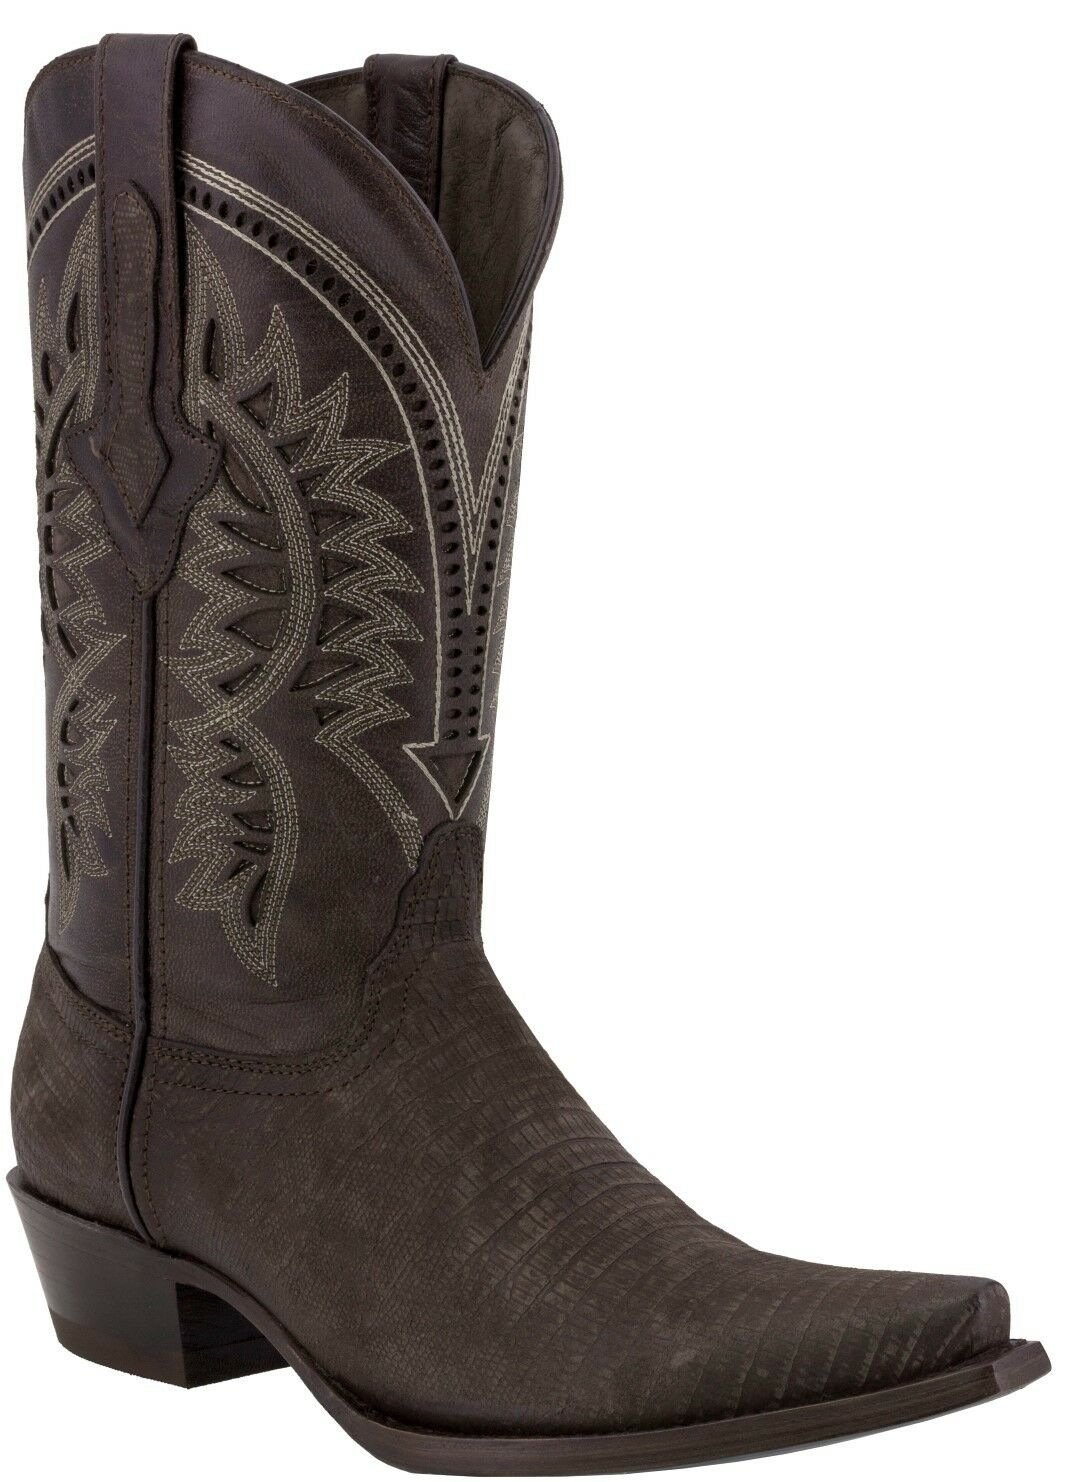 Mens Brown Lizard Print Leather Cowboy Boots Casual Dress Pointed Toe